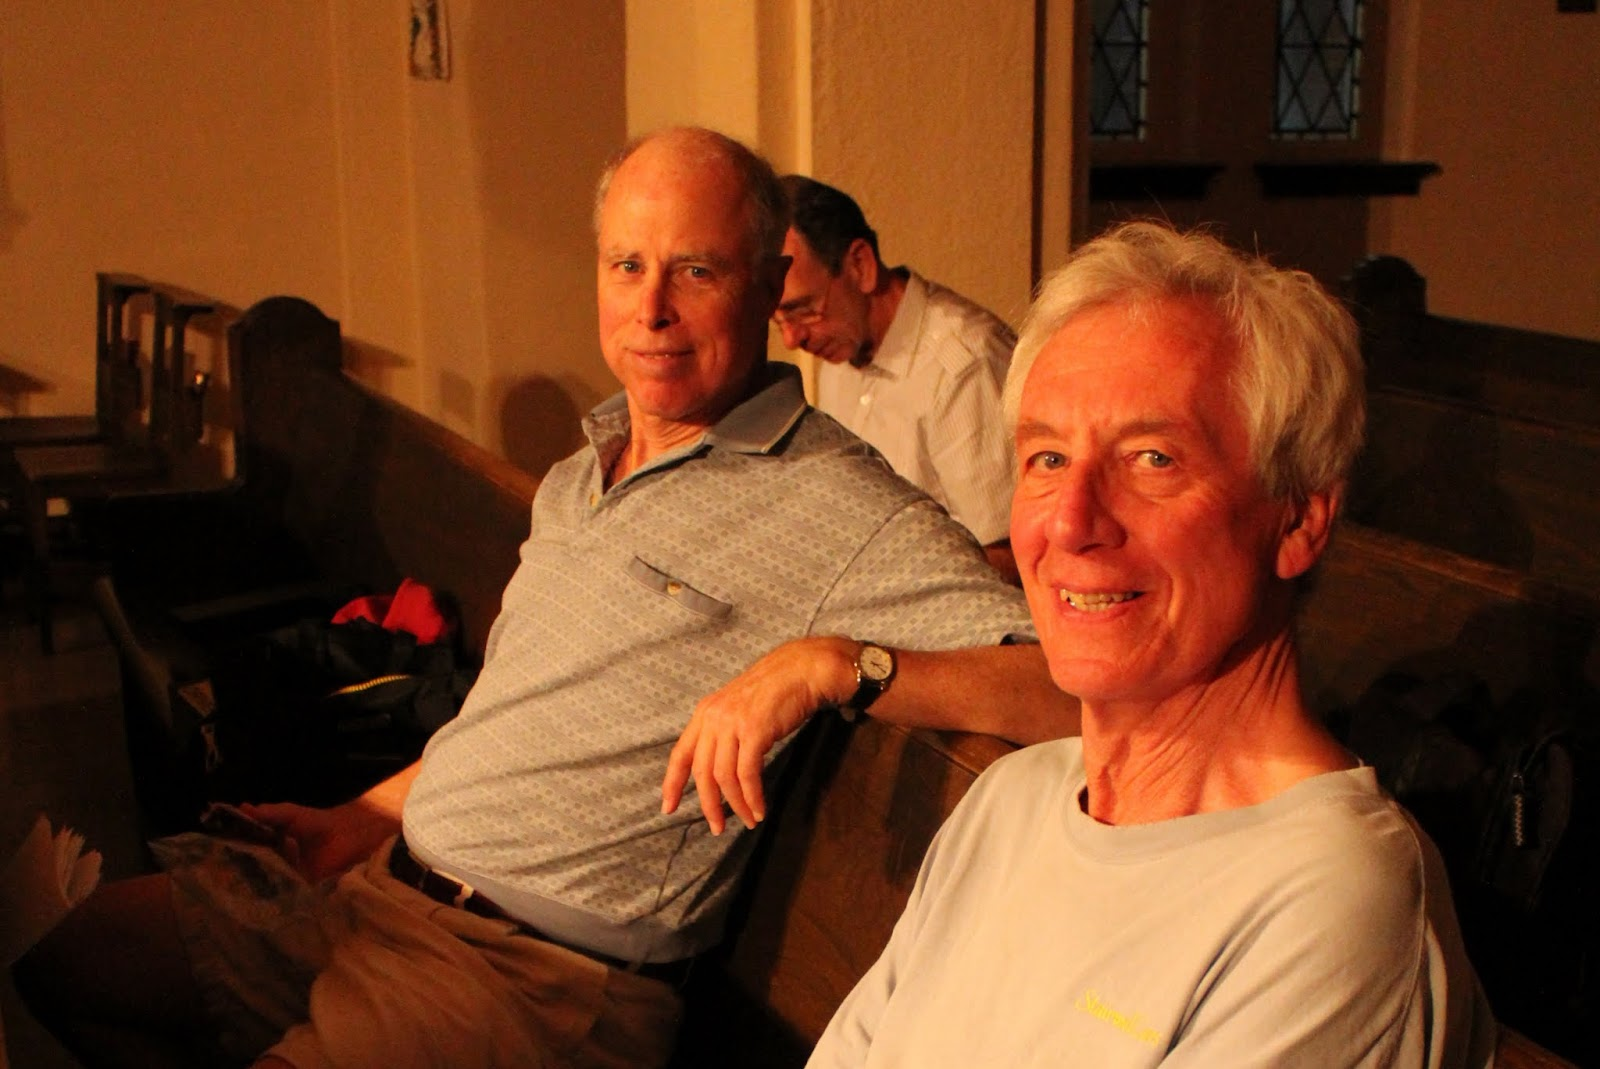 Bill and Keith, Basses, relax at Cantate Domino recording session